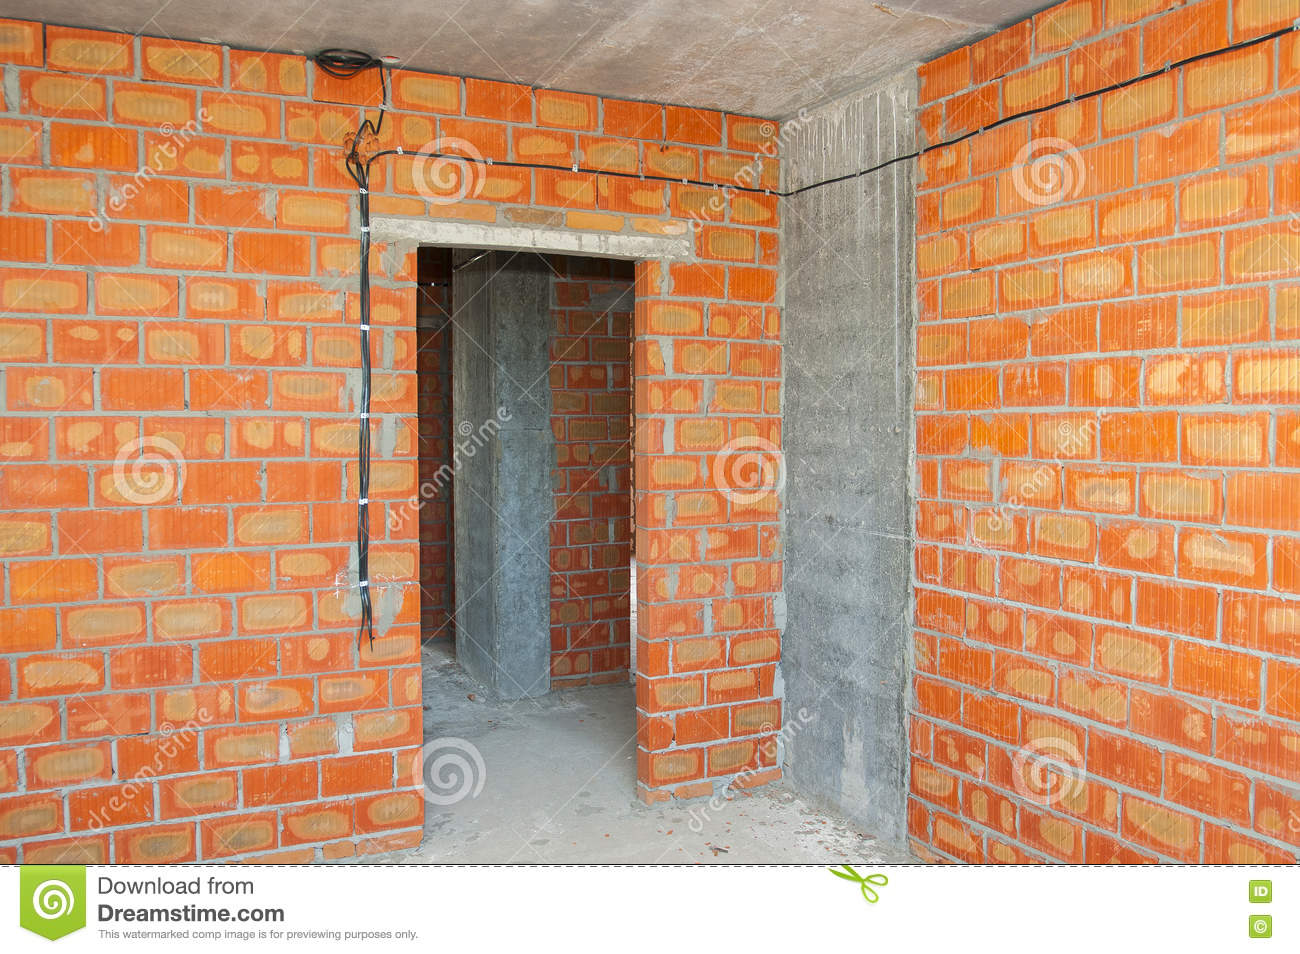 Bricklayer Building New House With Brick Walls, Interior